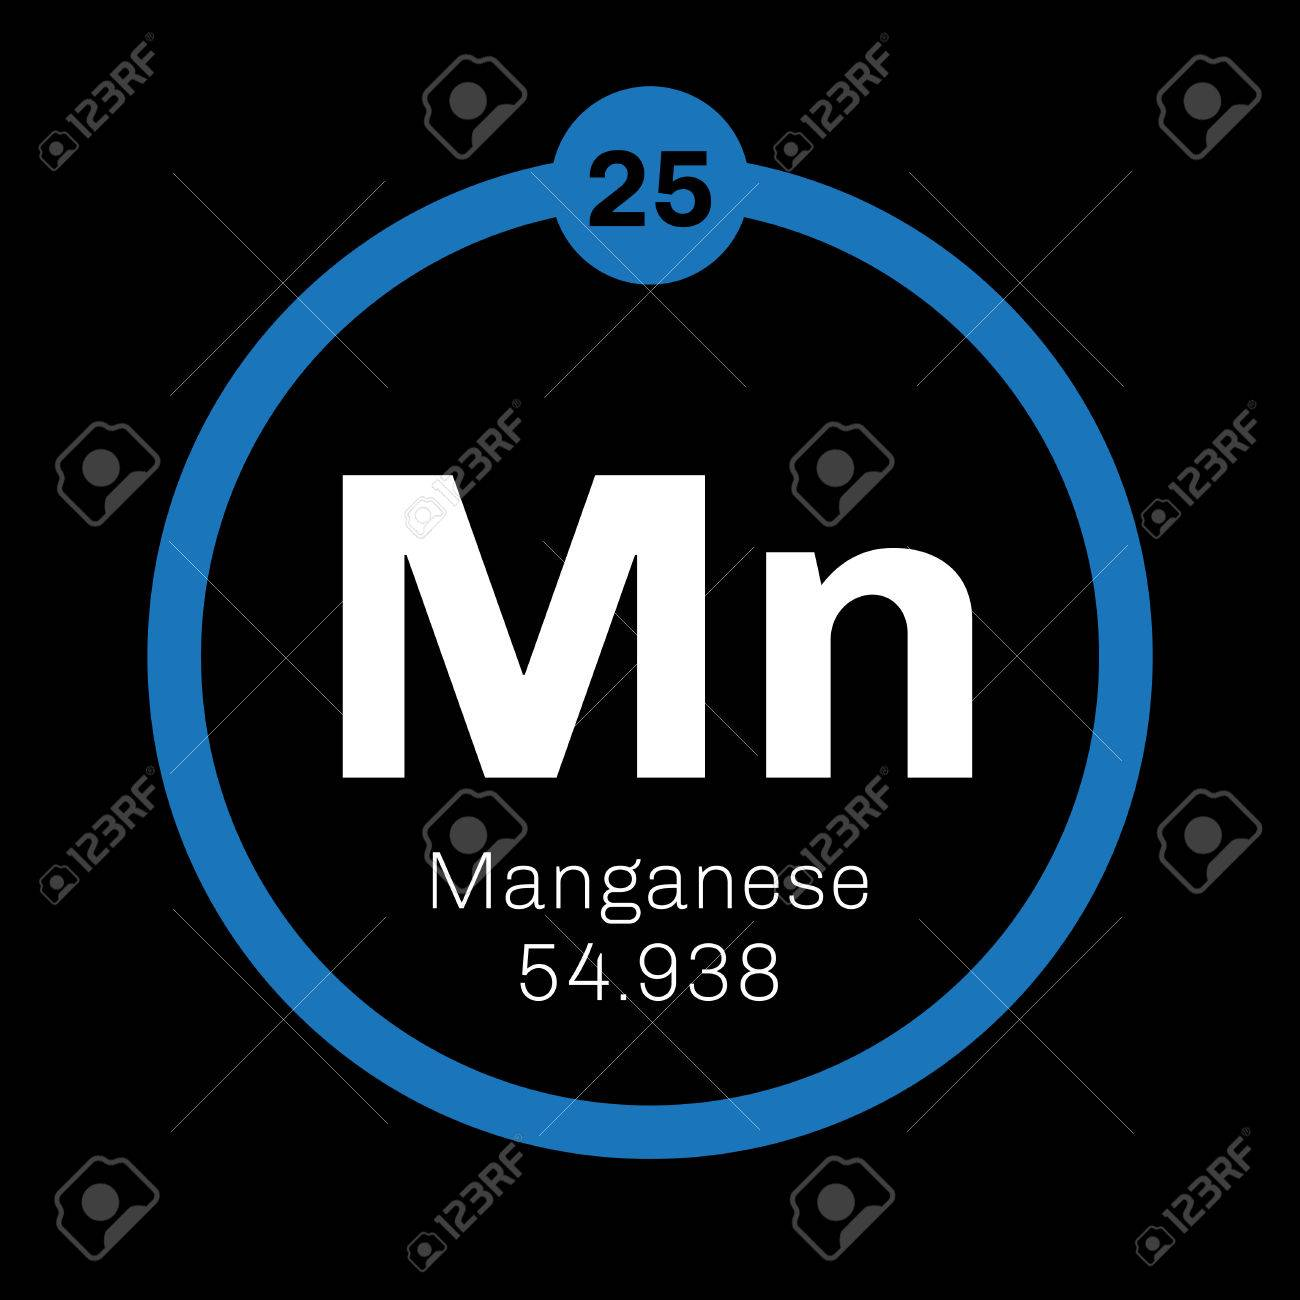 Manganese Chemical Element Colored Icon With Atomic Number And